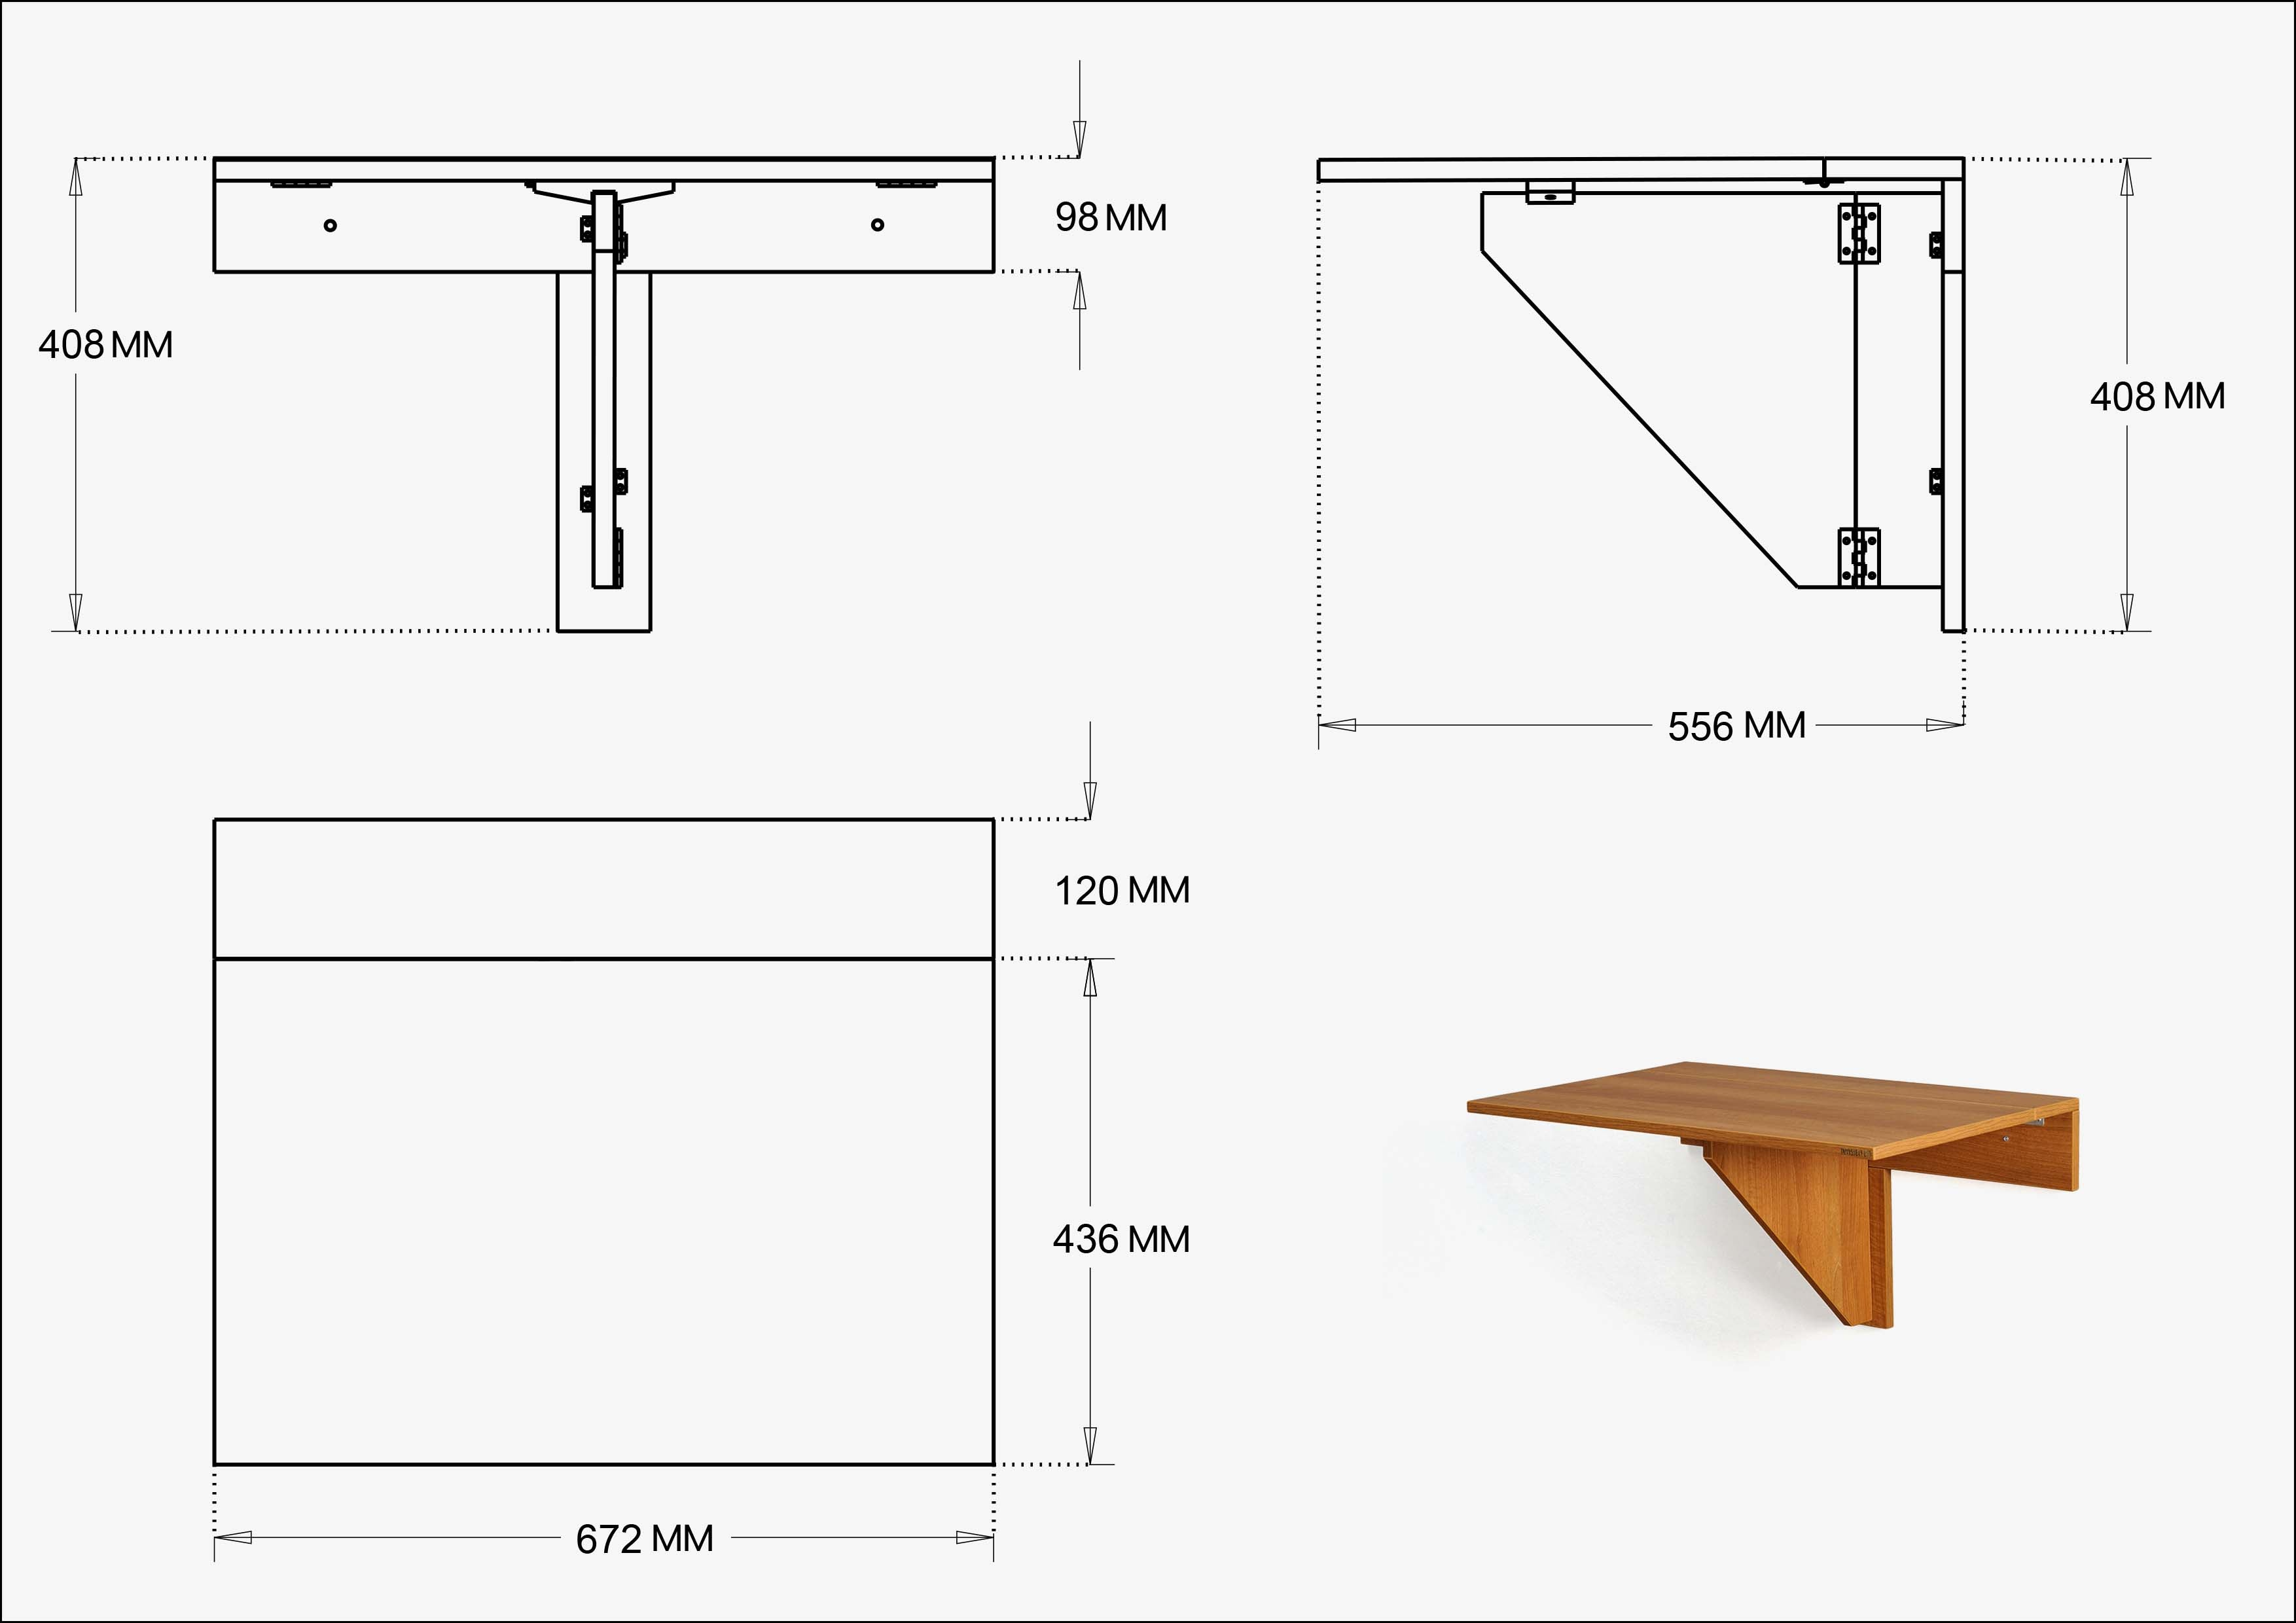 Wall mounted Folding table Dimension | www.invisiblebed.com